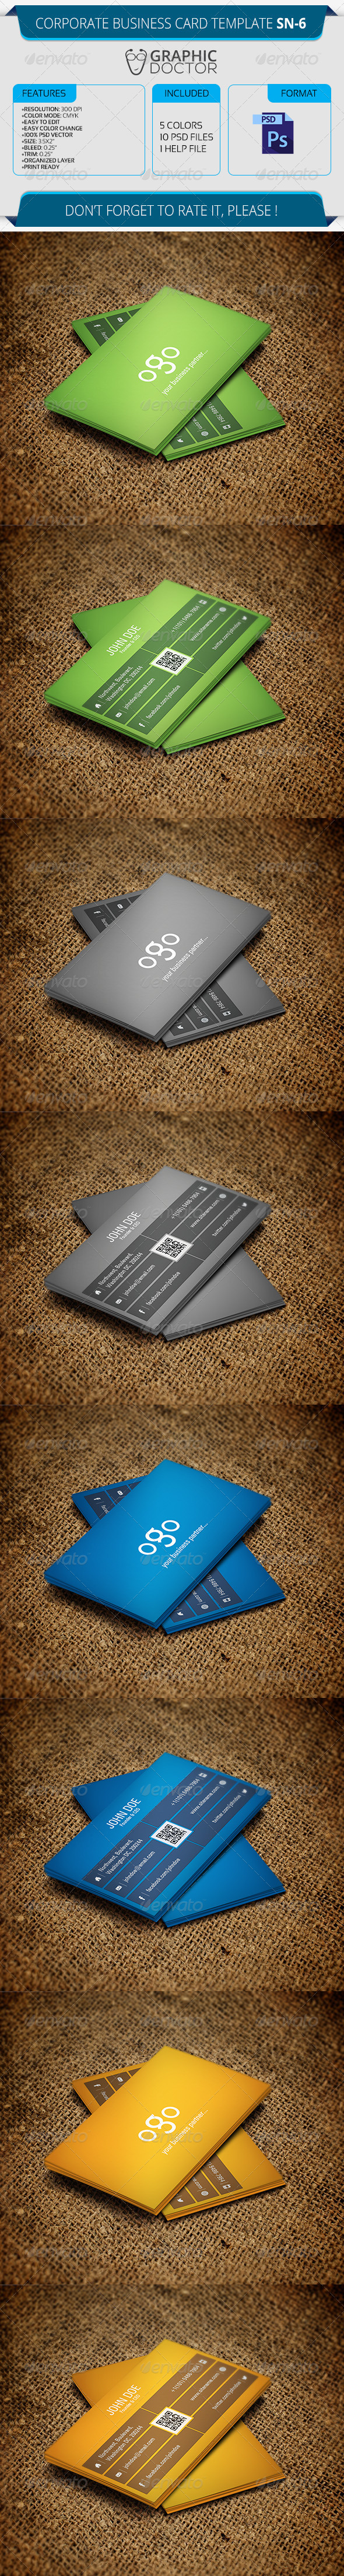 Corporate Business Card Template SN-6 - Corporate Business Cards